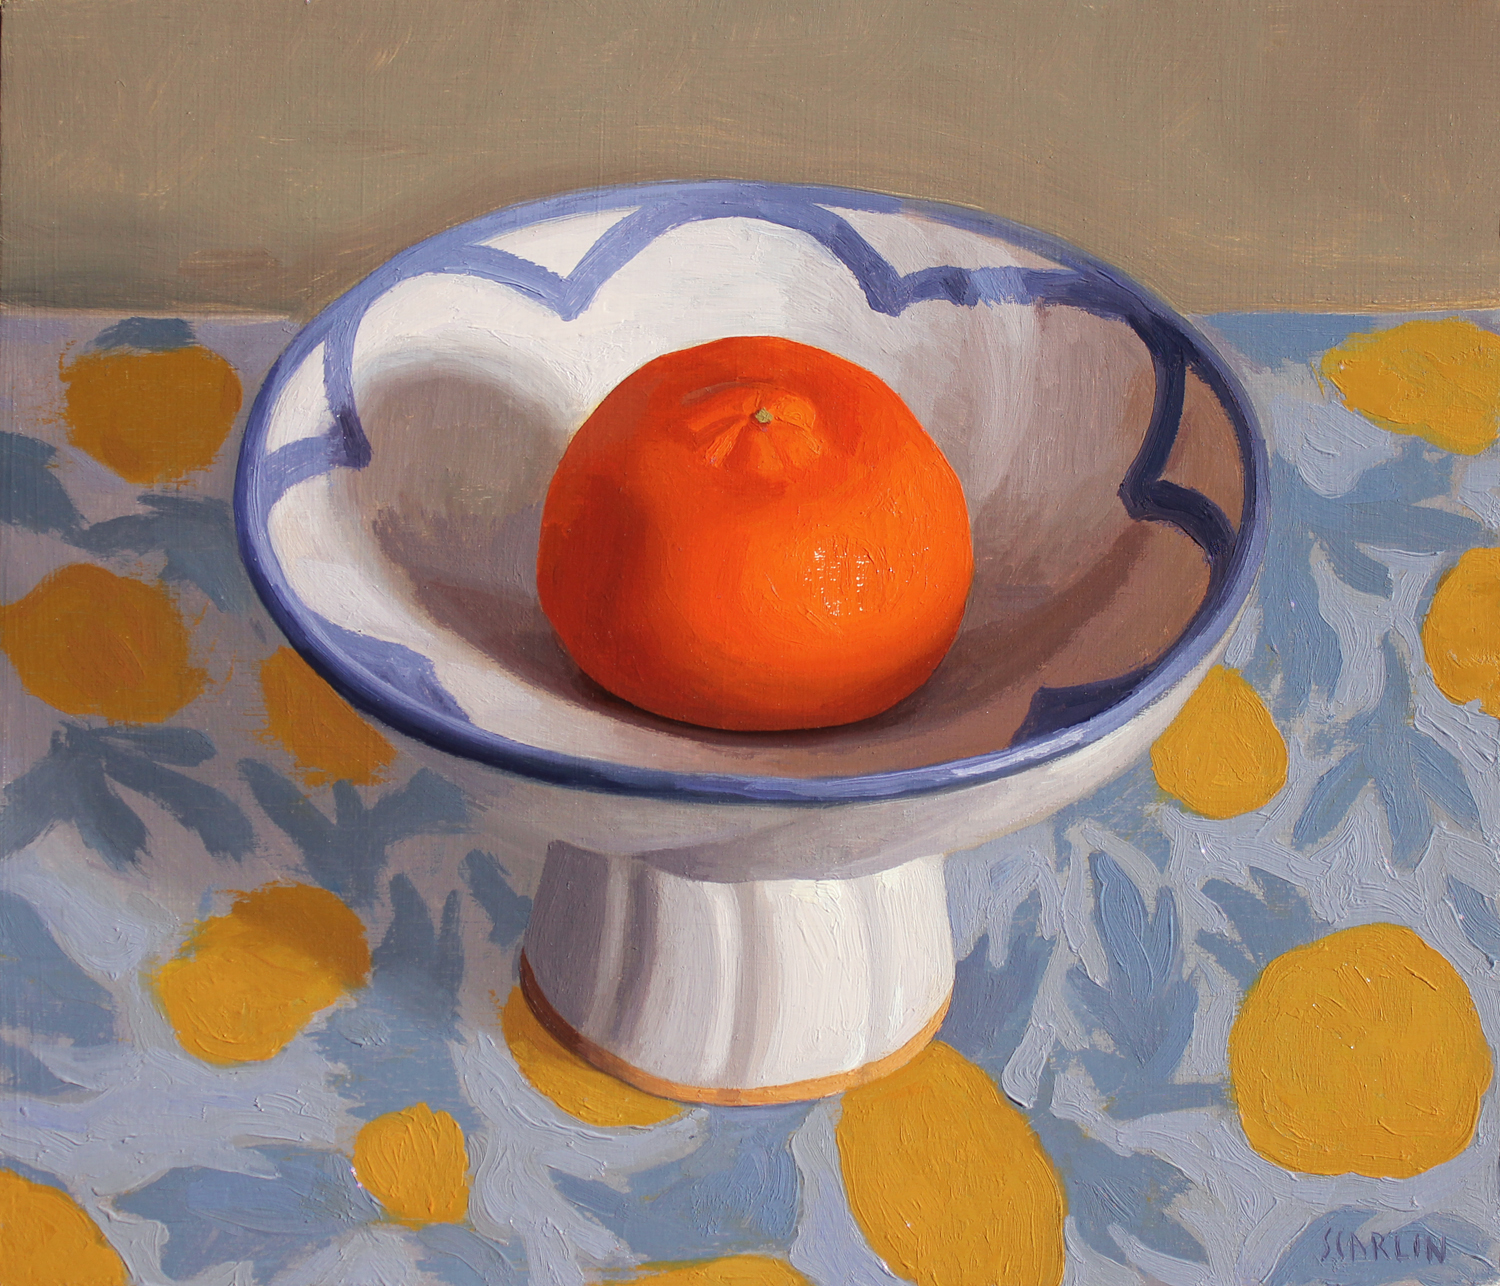 Naartjie in a bowl  Oil on panel 30x35cm  2019   Available through Chandler House